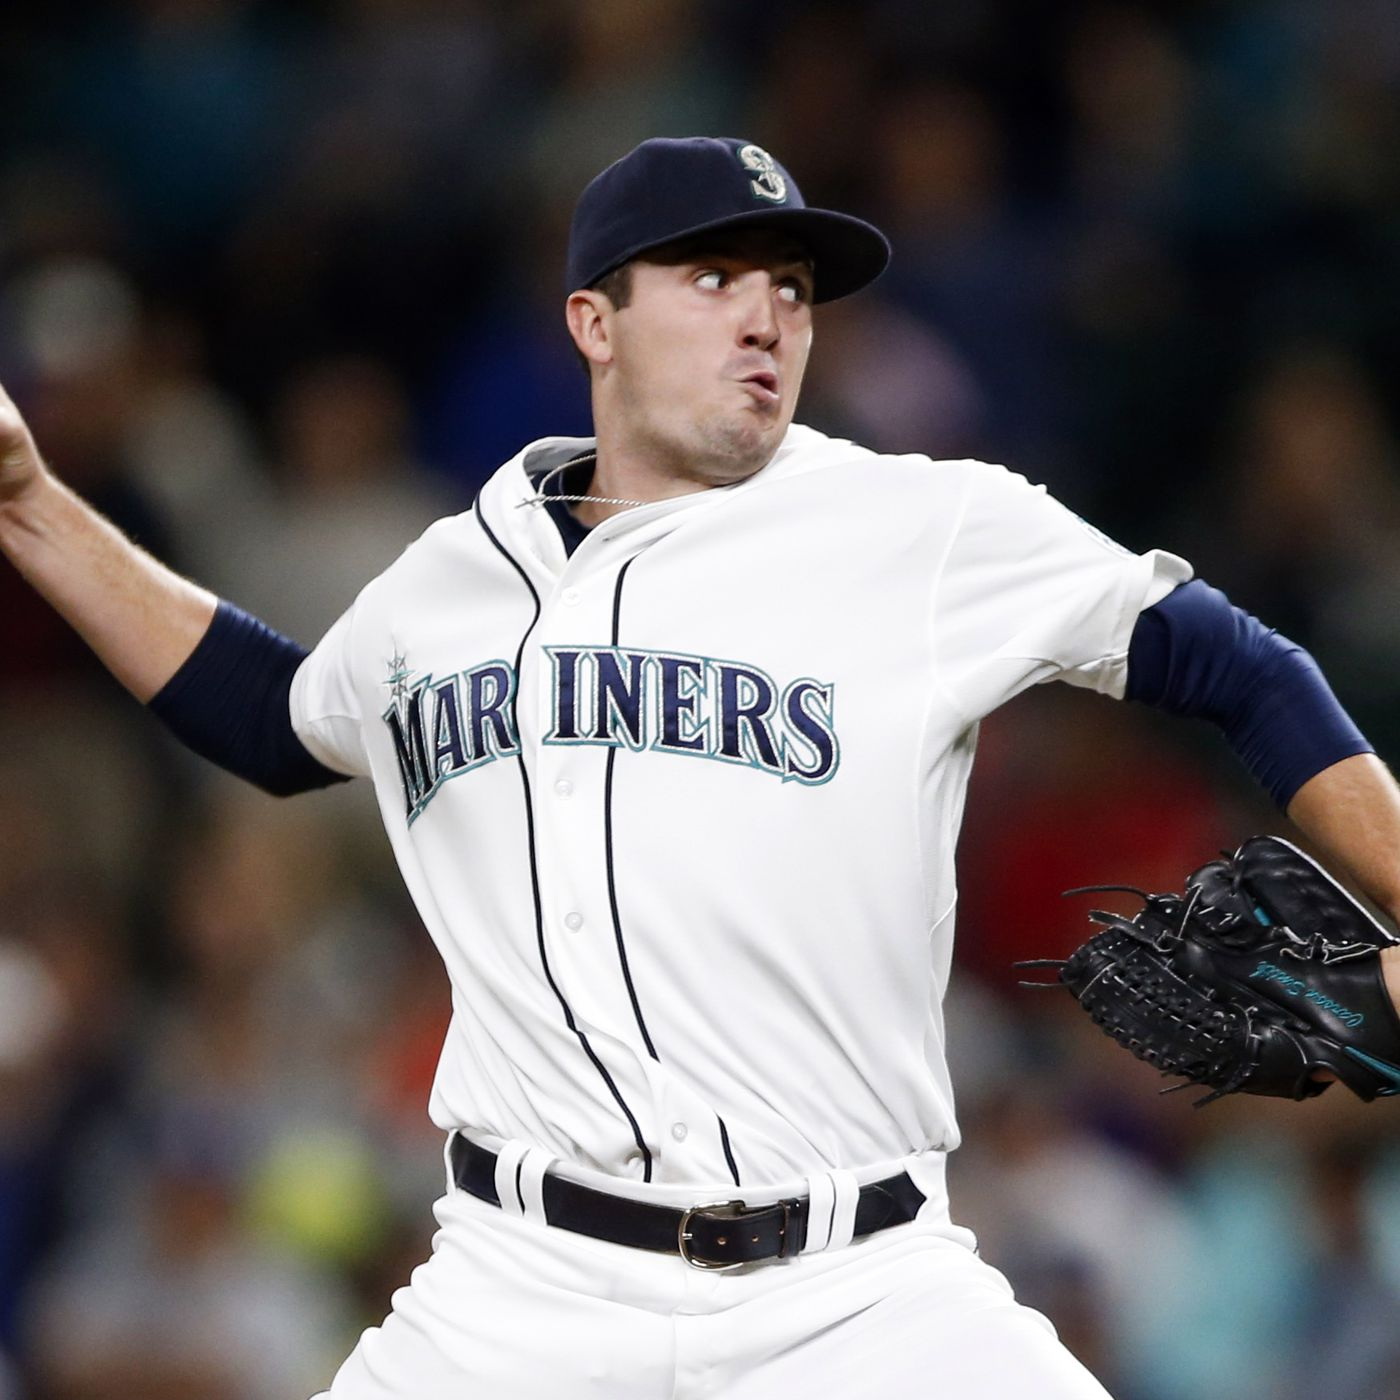 Red Sox Trade Wade Miley To Mariners For Carson Smith And Roenis